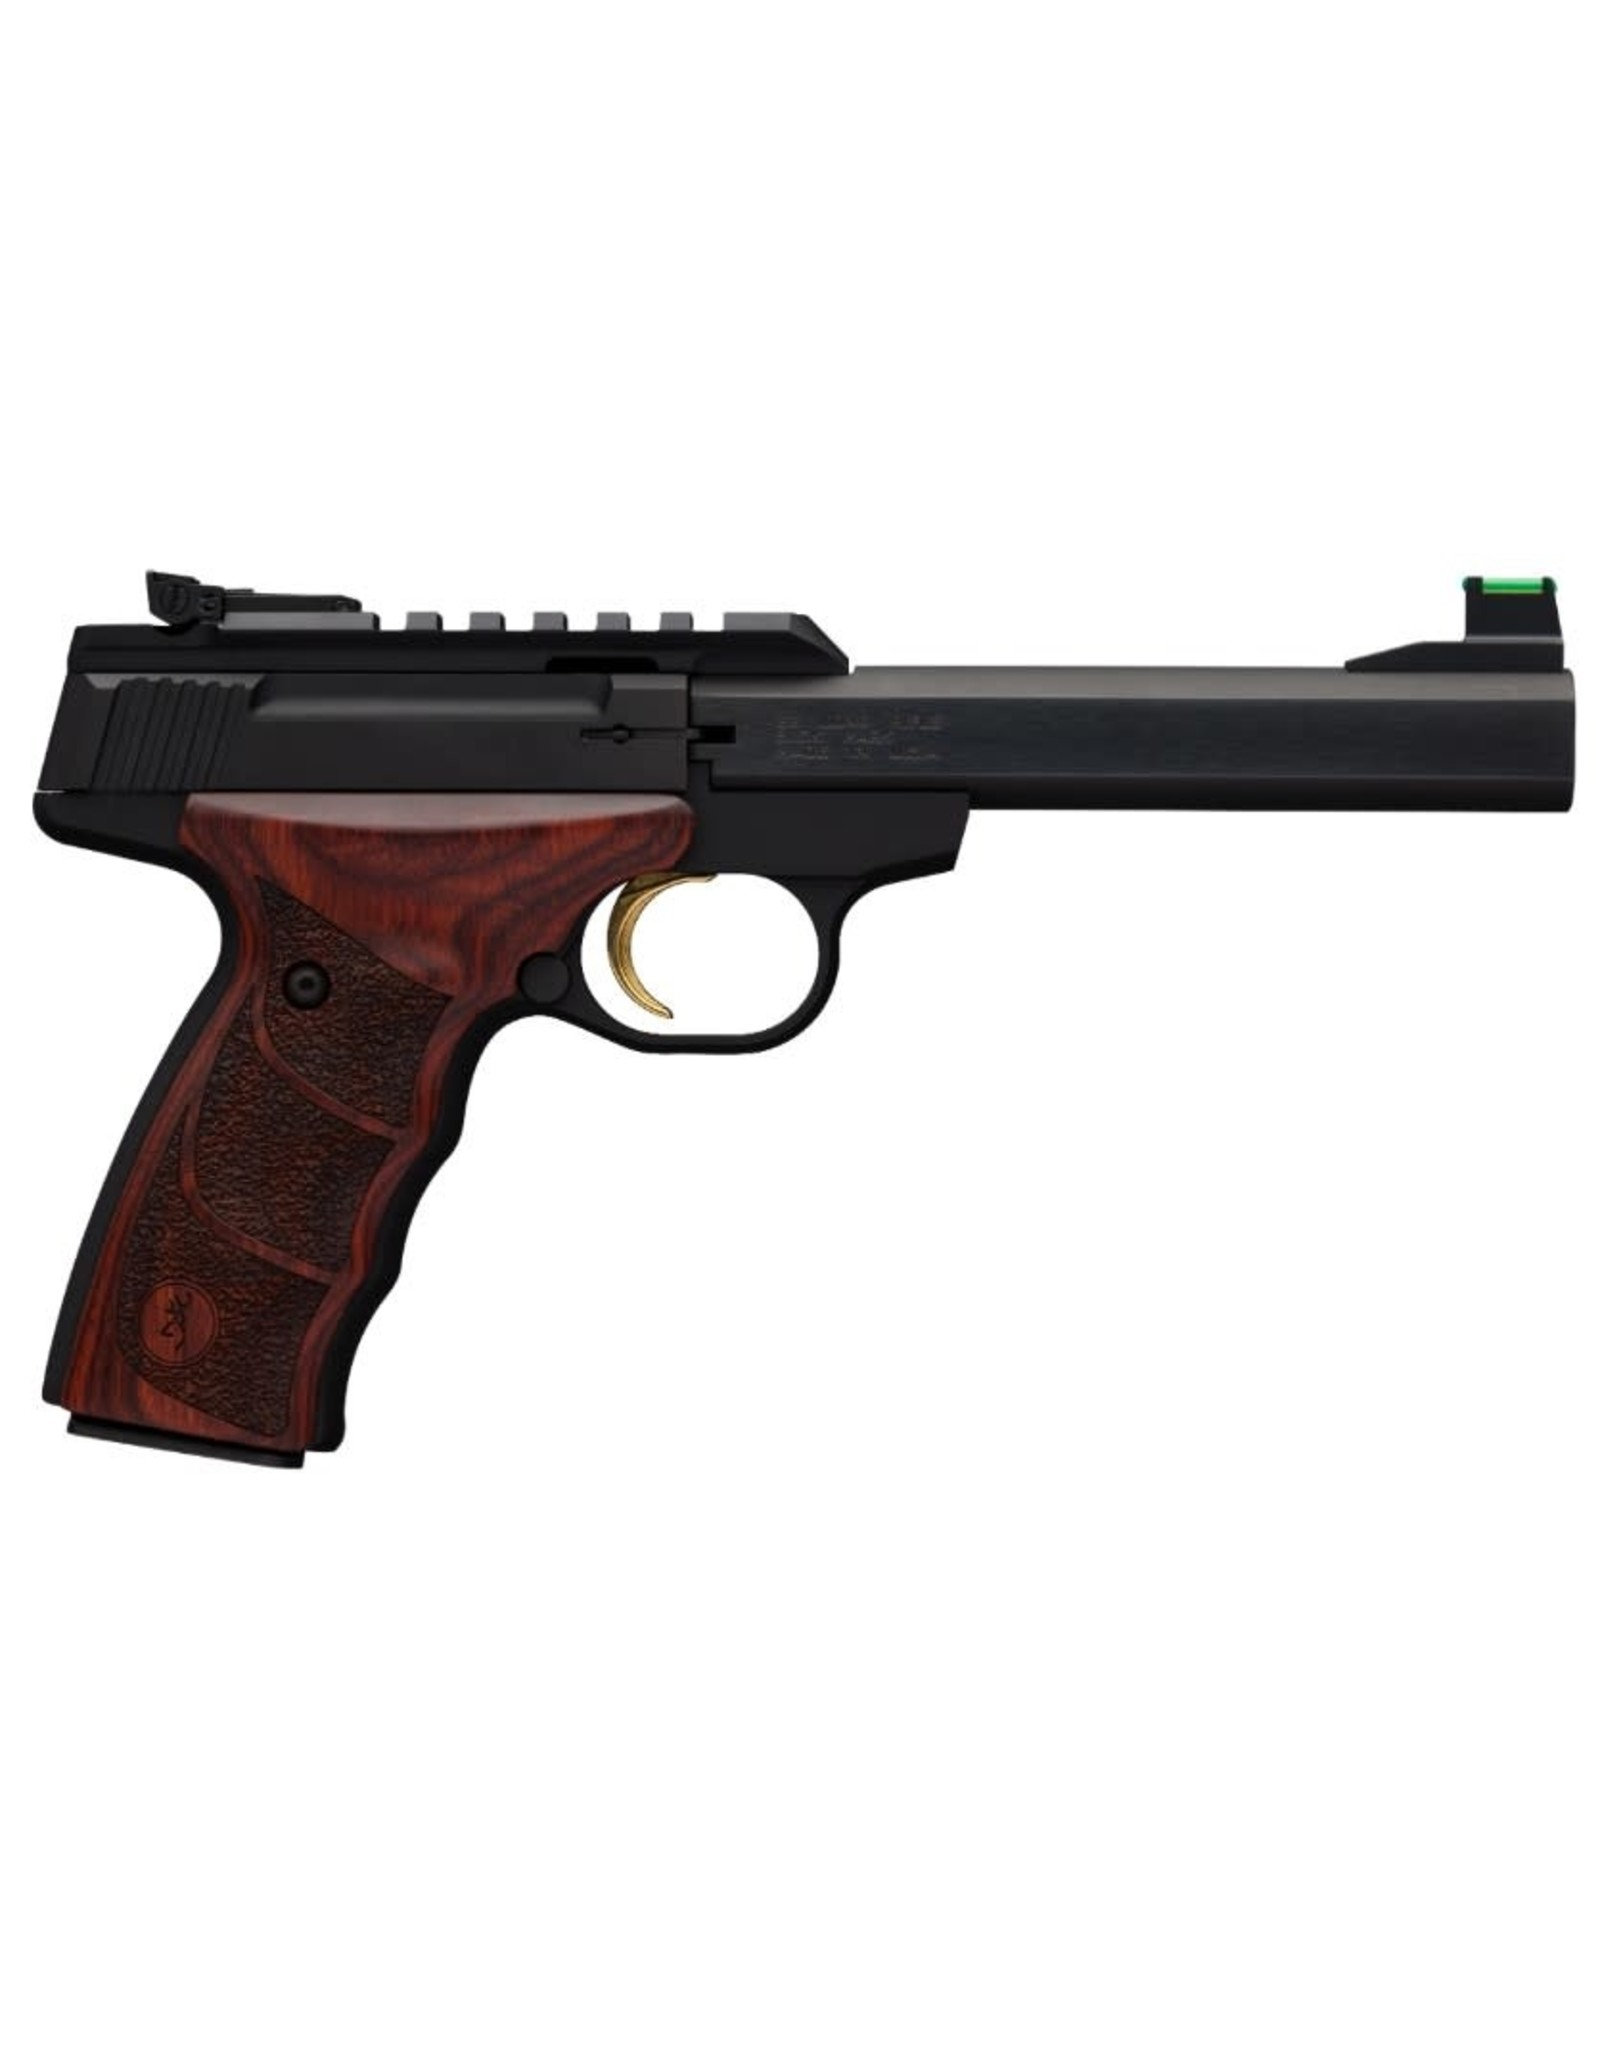 """Browning Browning Buck Mark Plus Rosewood .22 LR 5.5"""" bbl 10+1 Round"""